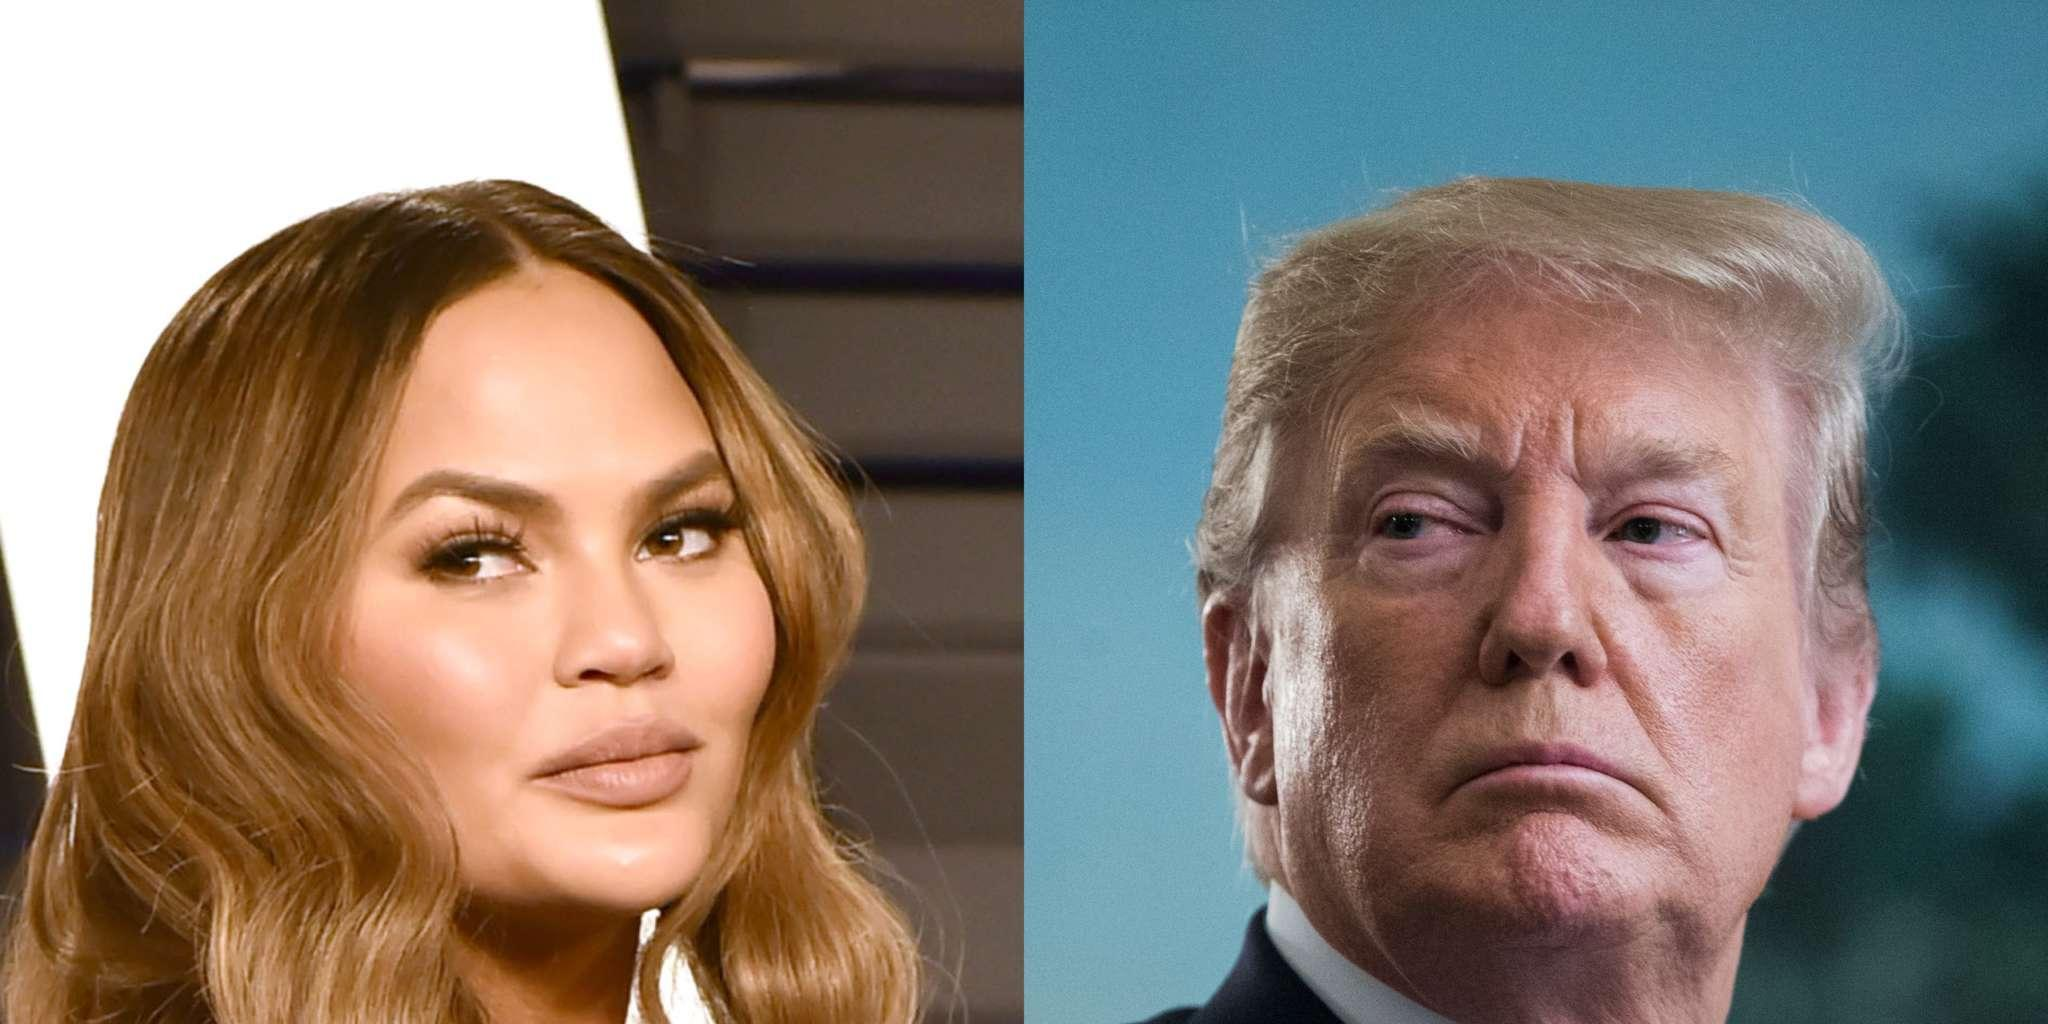 Chrissy Teigen Disses Donald Trump Even More - Says She Doesn't Care The President Dislikes Her